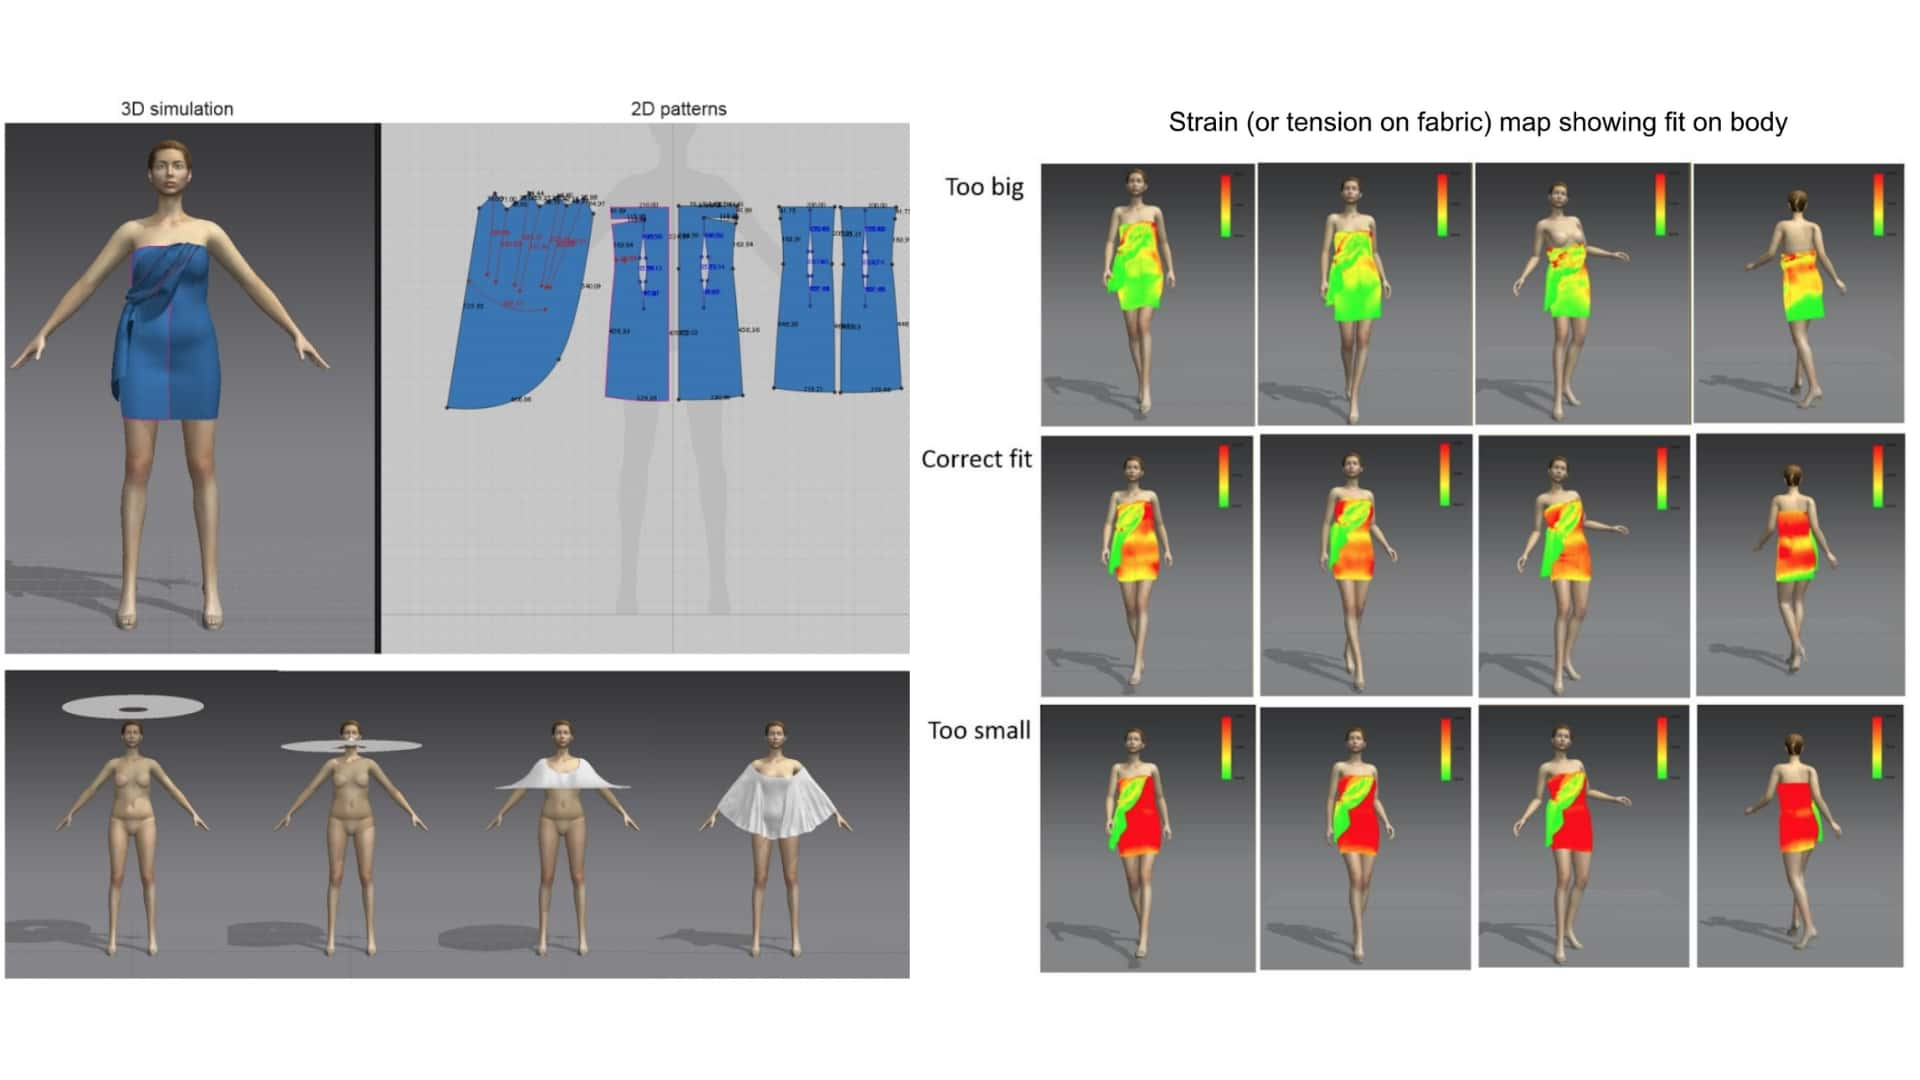 Week 2: From 2D to 3D - Introduction to project workflow2D patterns for 3D digital design and visualisationToiling and fitting on digital mannequins/avatarsMaking adjustments and testing for fitWorkshop: Creating basic blocks (bodice, dress, skirt and pants) with digital fitting